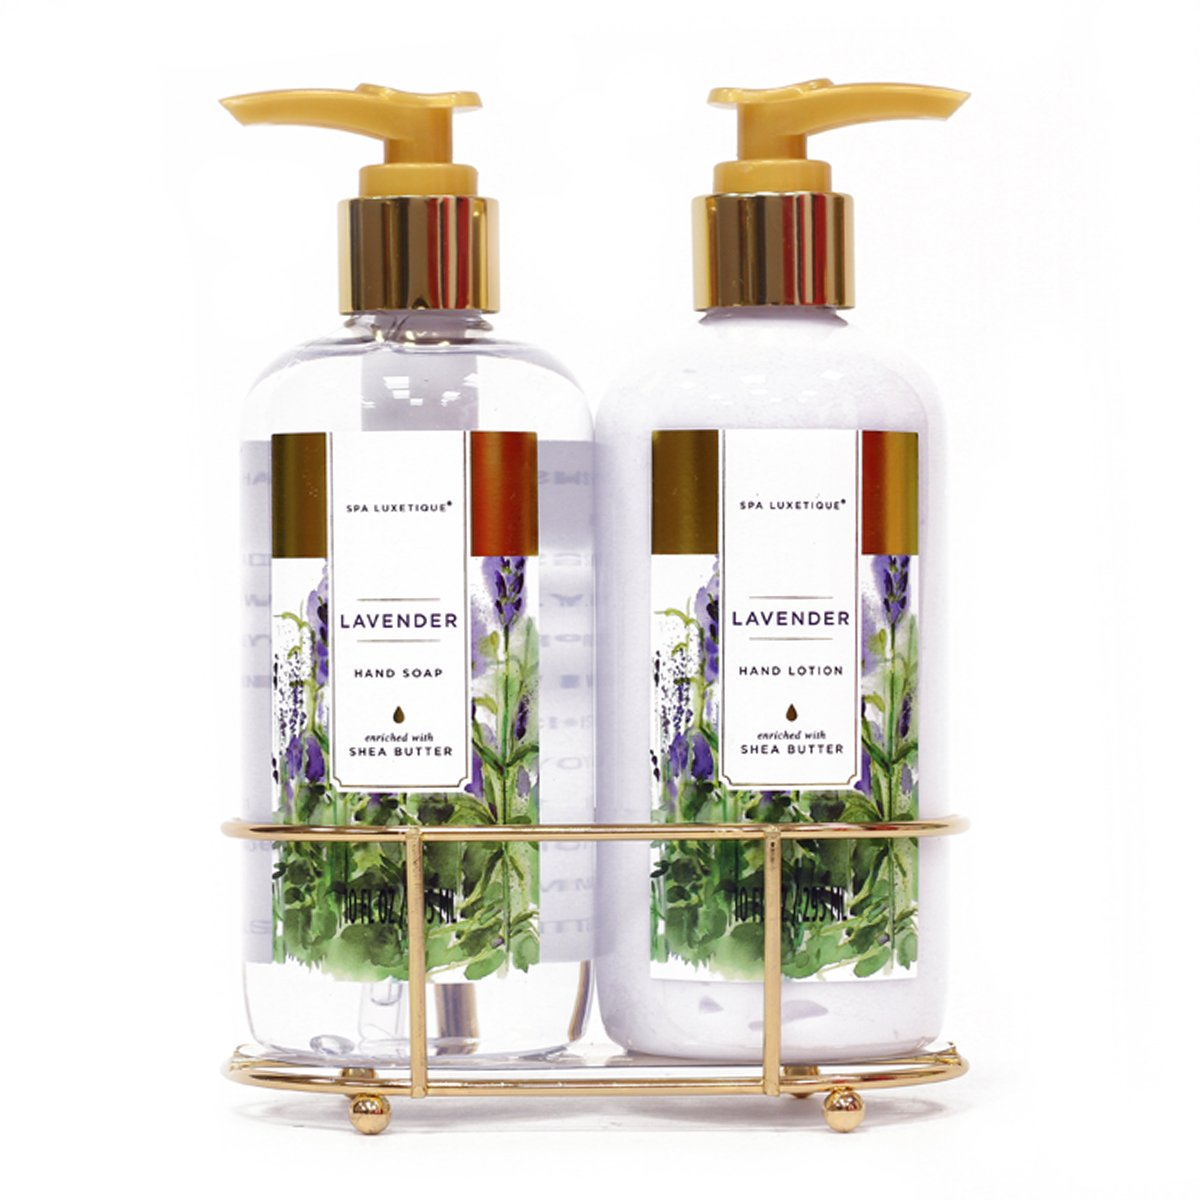 Spa Luxetique Hand Soap and Hand Lotion Caddy Set, Lavender Hand Cream Gift Set, Ideal Gift for the Holidays, Christmas, Birthday, Mother's Day, Valentine's Day, Thank You Gift